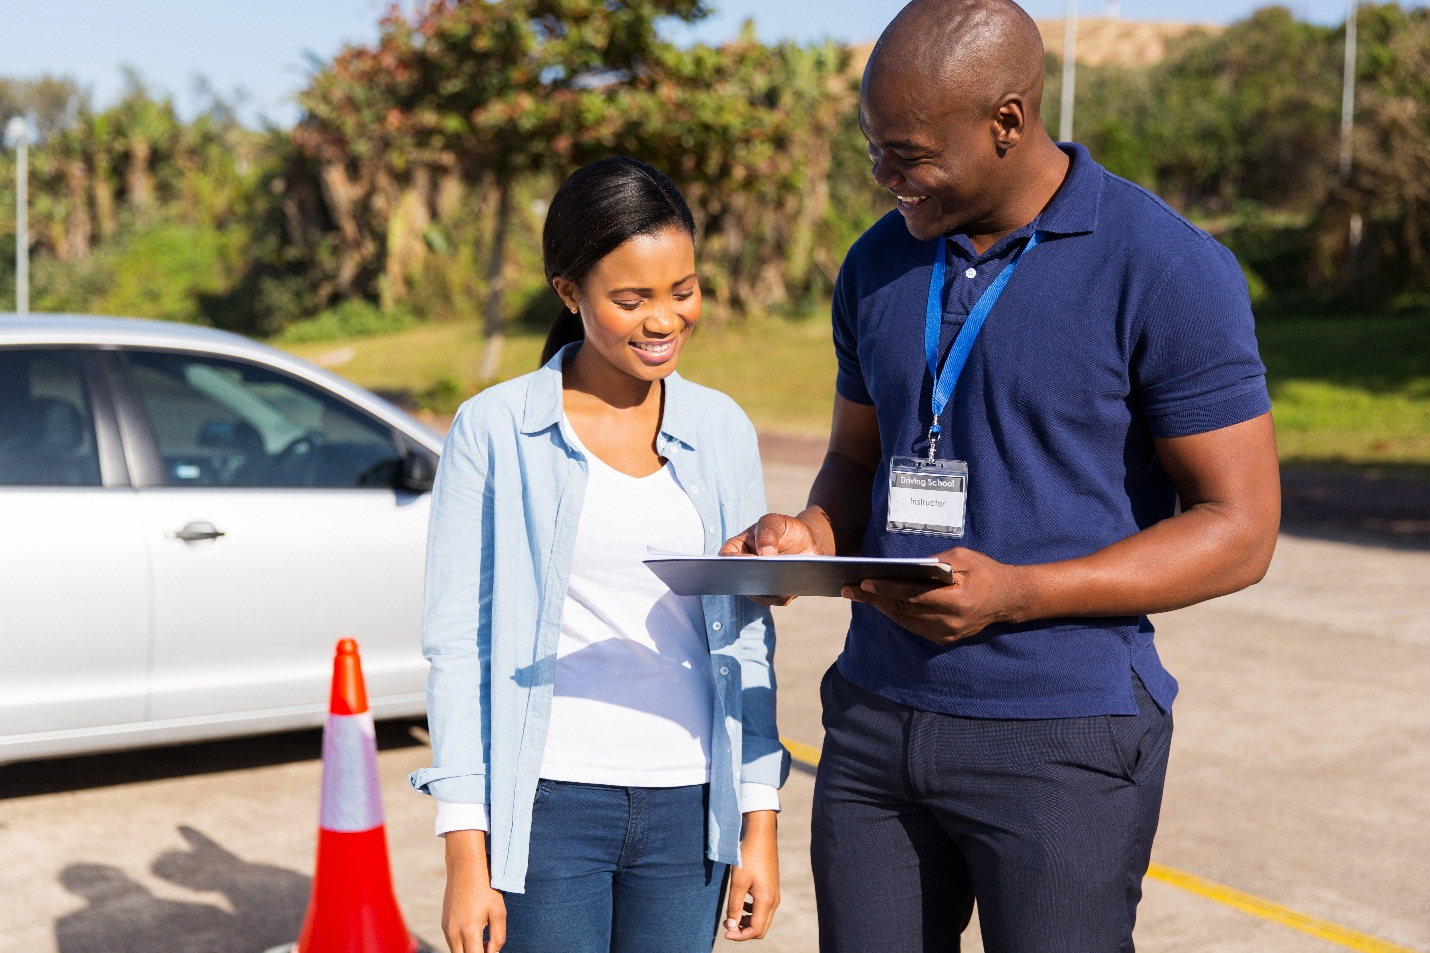 girl stands with driver take driving test